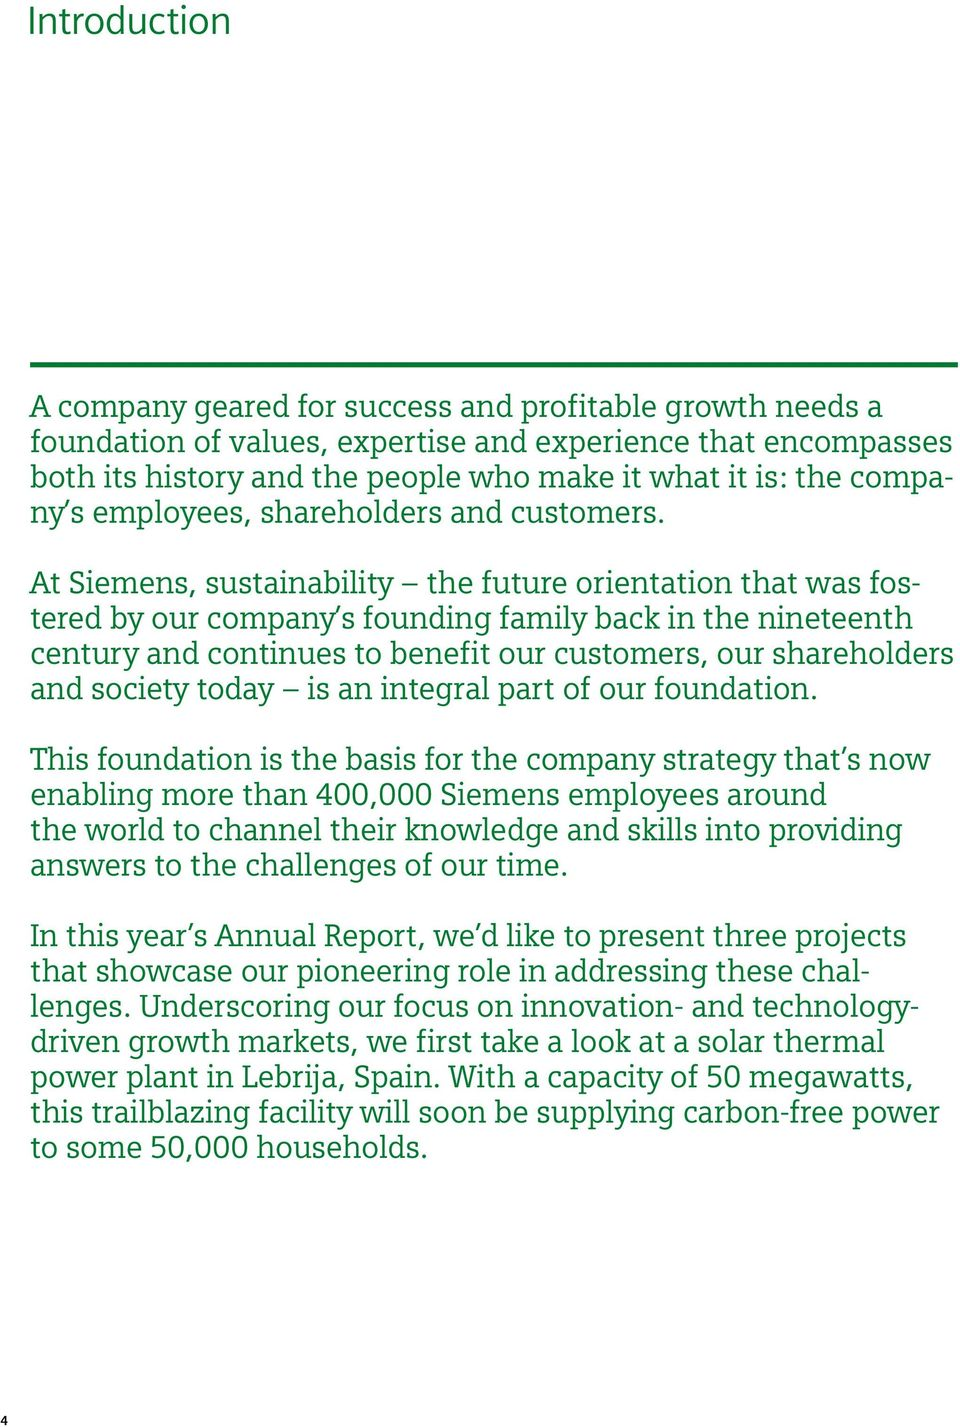 At Siemens, sustainability the future orientation that was fostered by our company s founding family back in the nineteenth century and continues to benefit our customers, our shareholders and